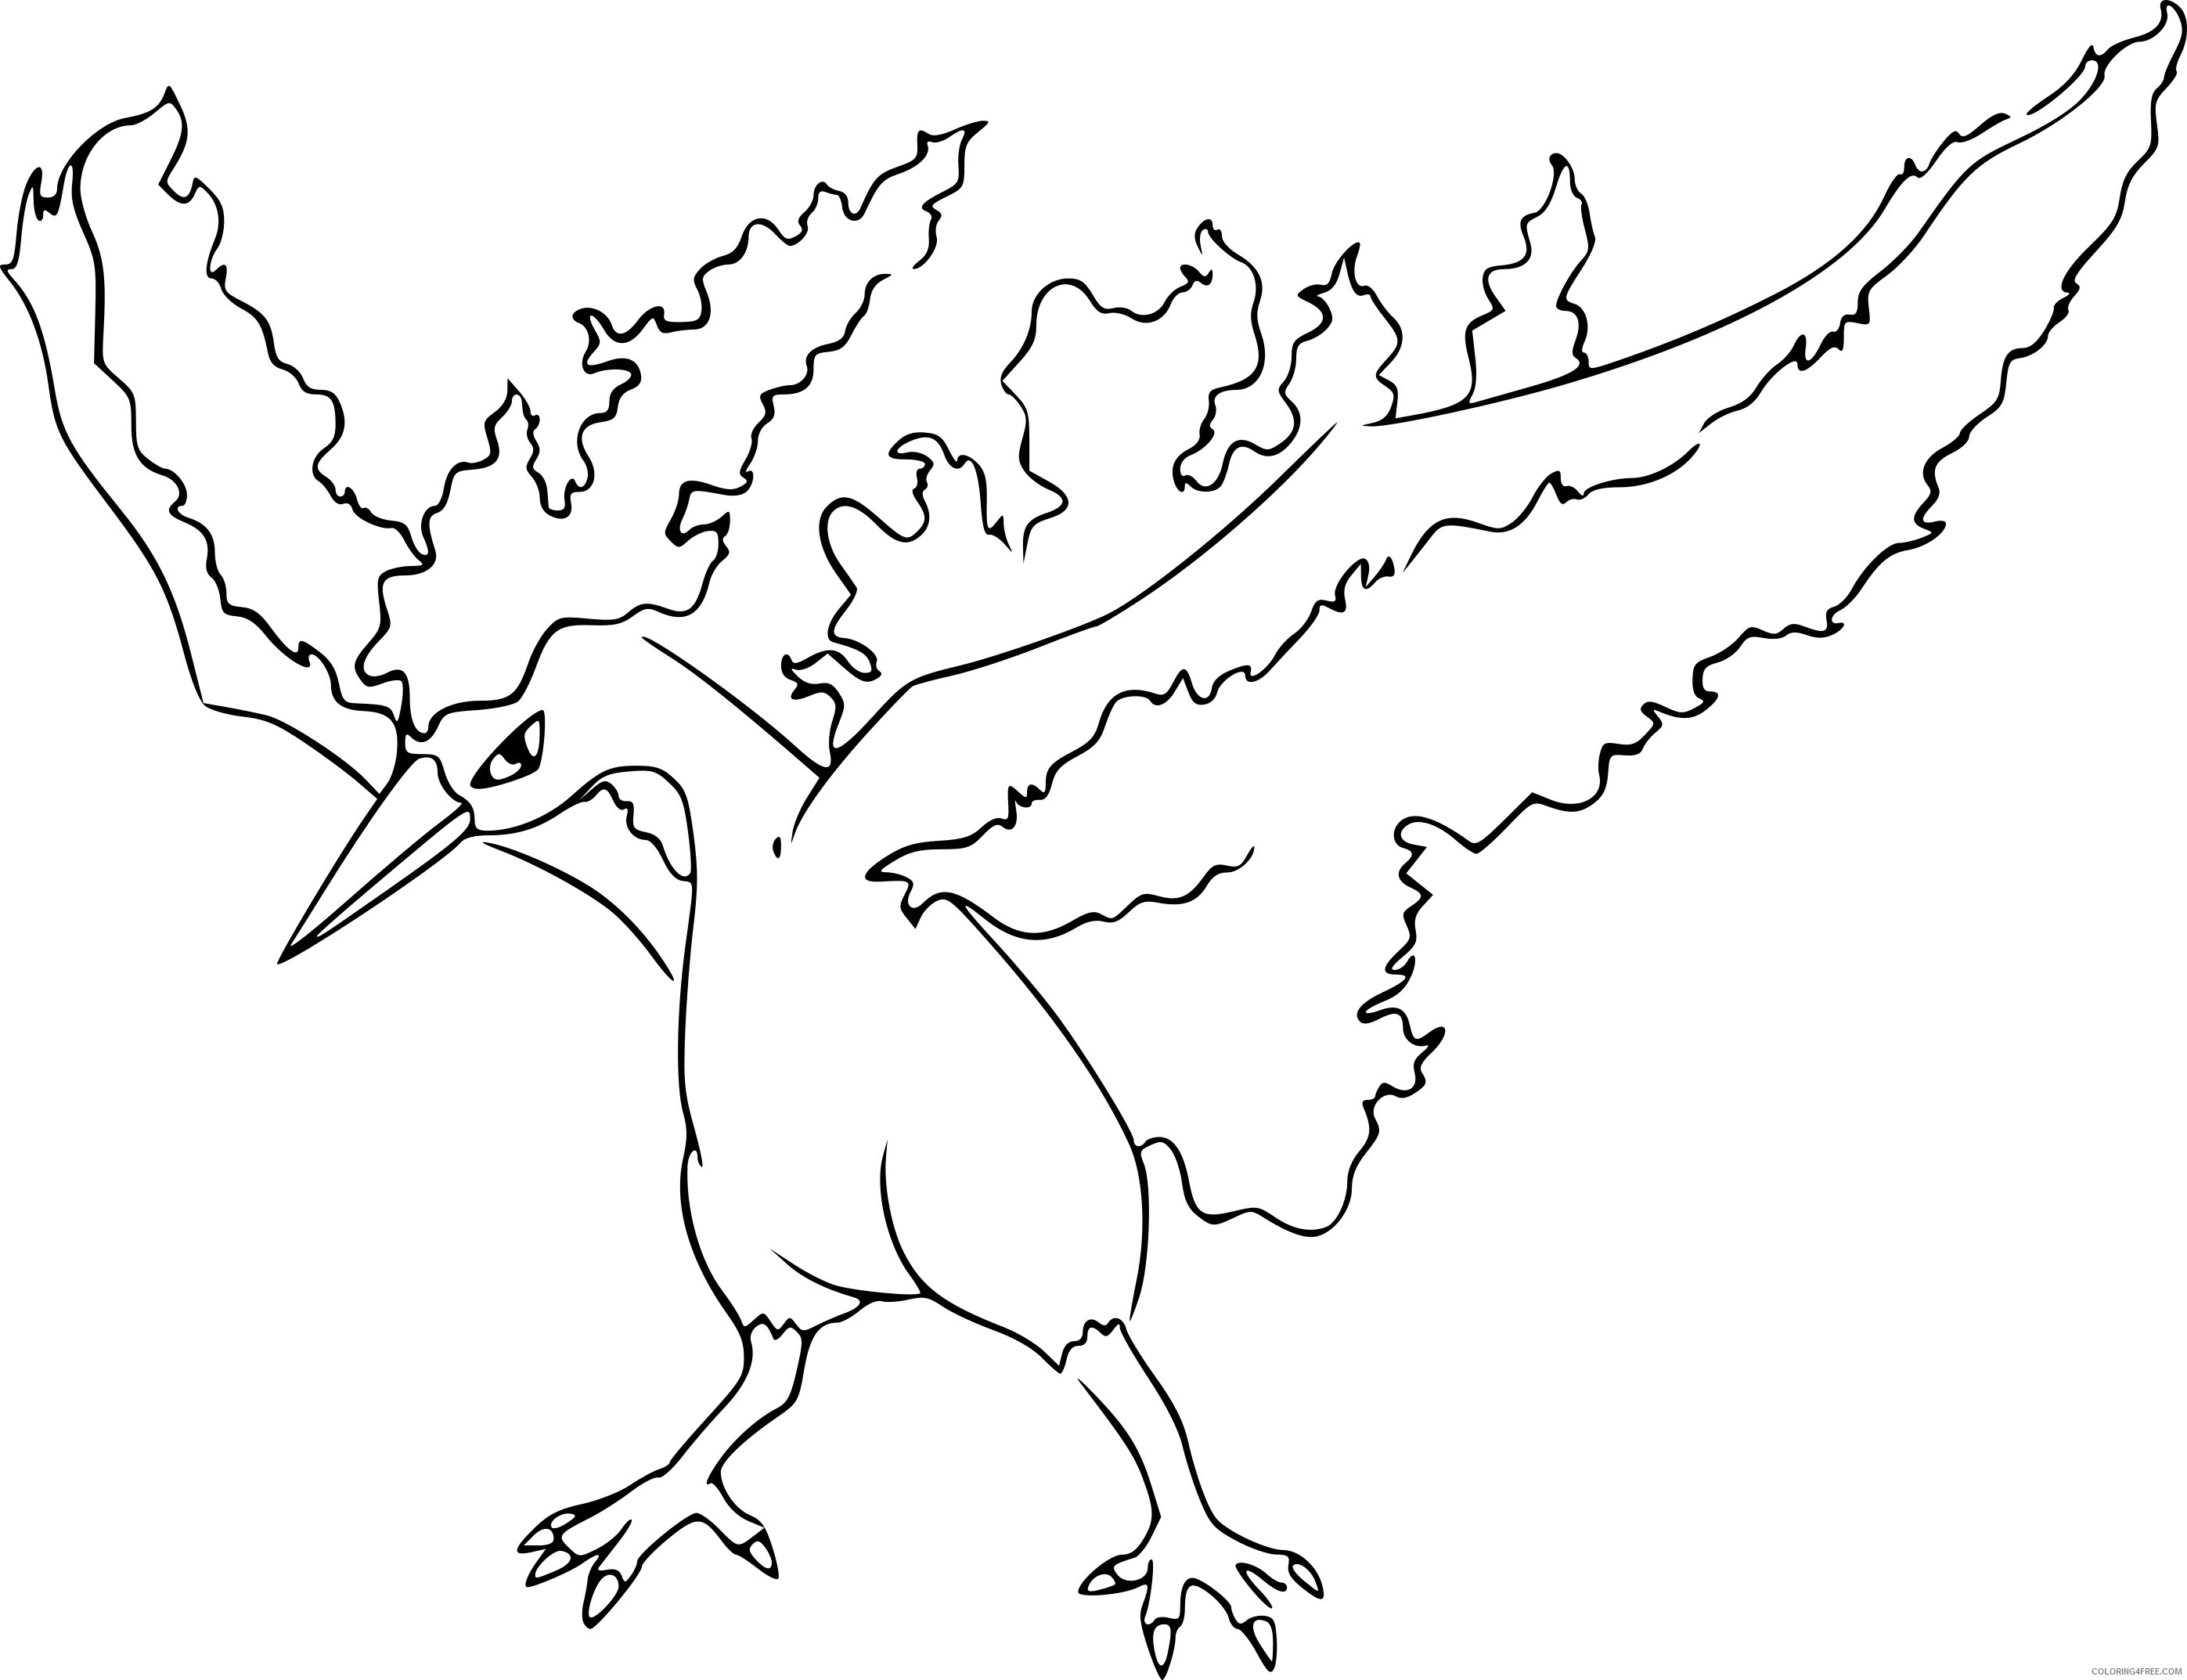 moltres legendary pokemon coloring pages Coloring4free